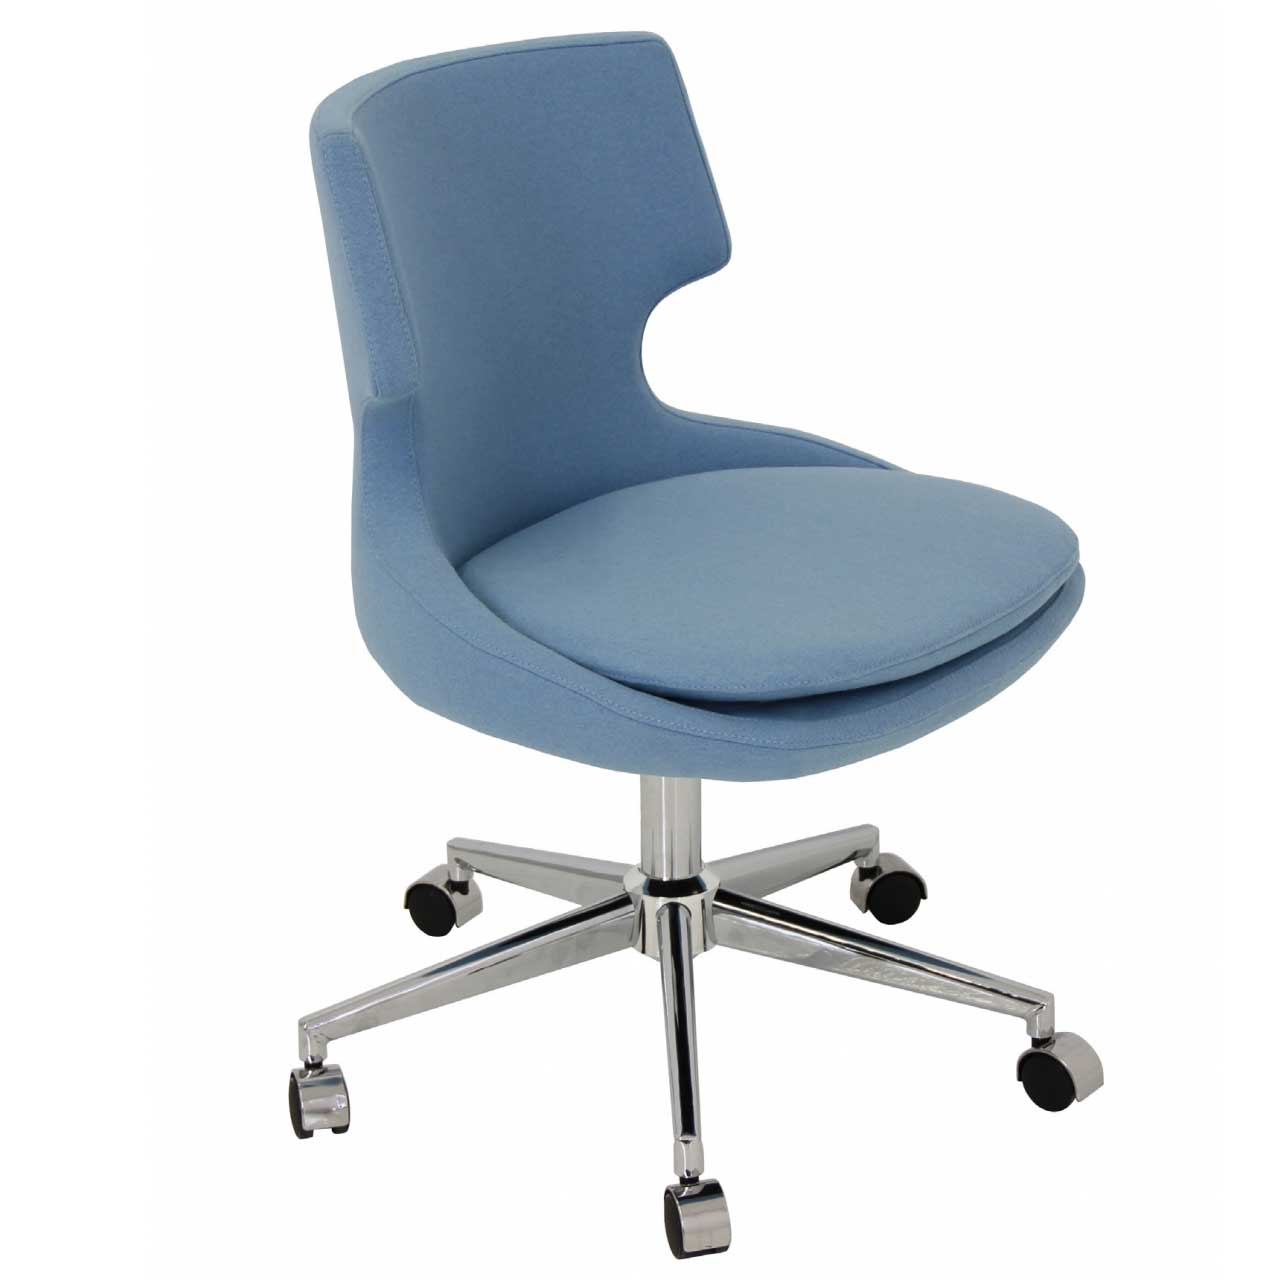 Patara ergonomic office chair for big people